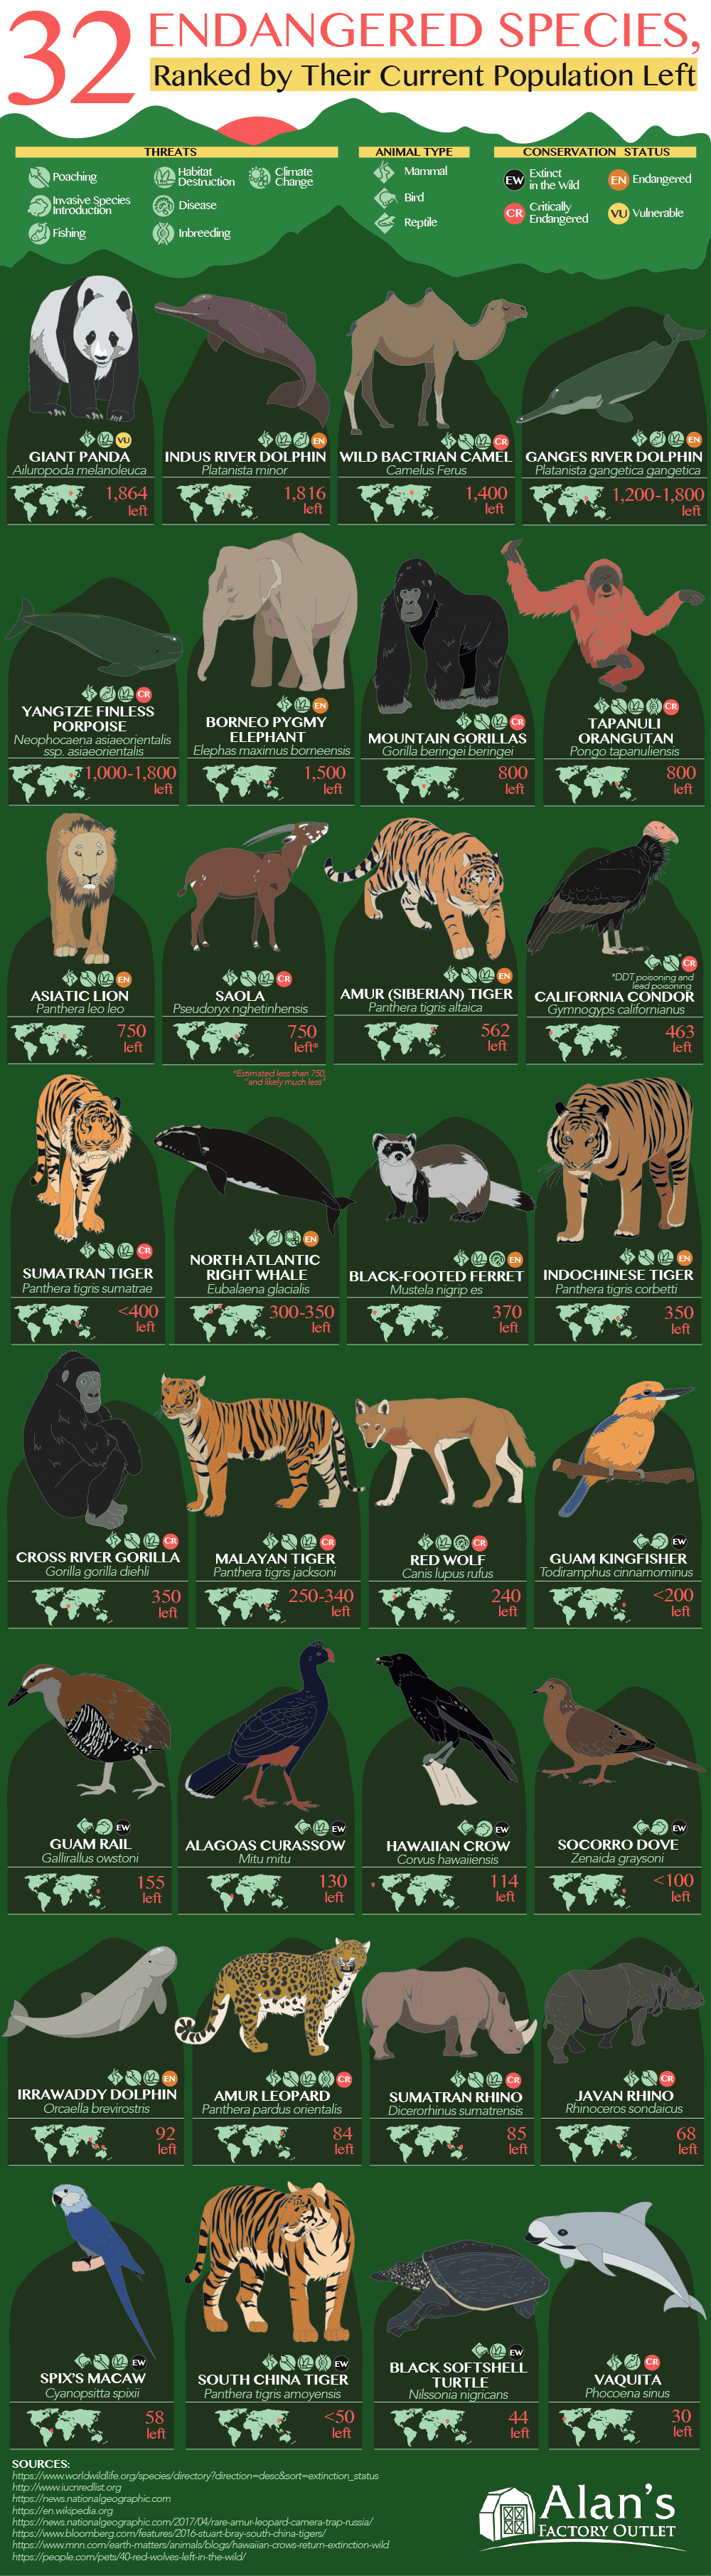 32 Endangered Species, Ranked by Their Current Population Left #infographic